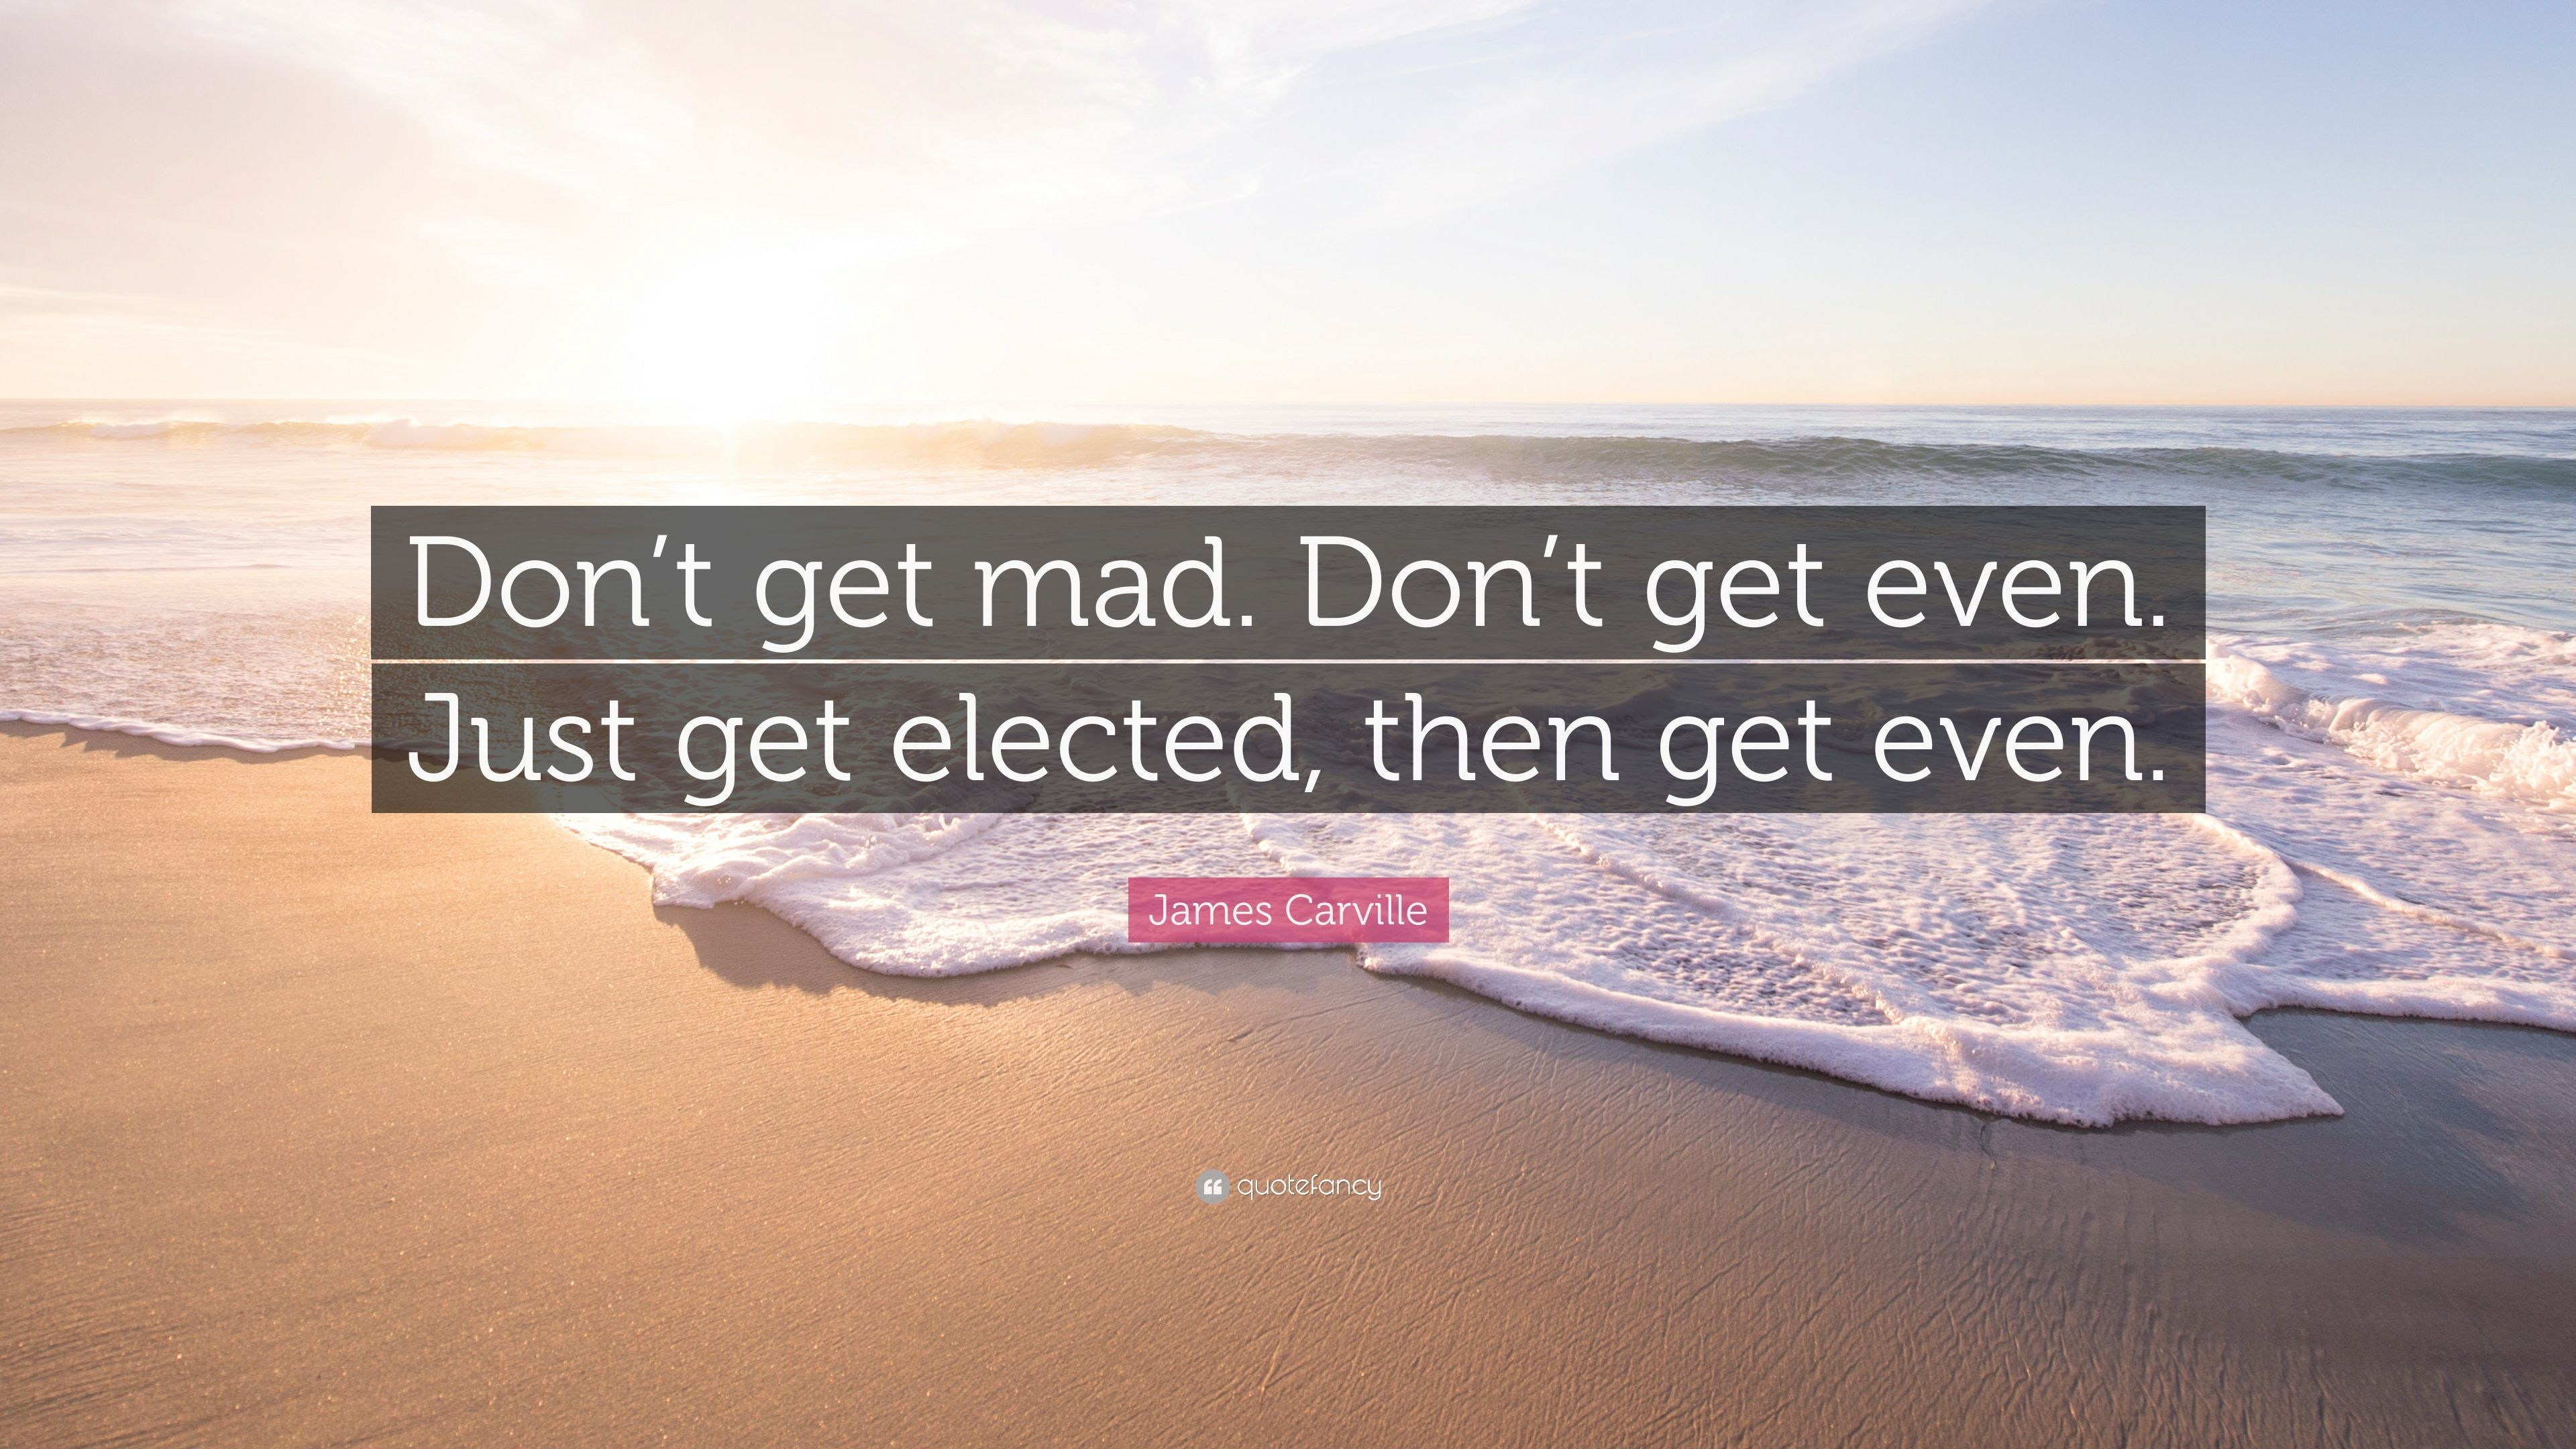 Superior James Carville Quote: U201cDonu0027t Get Mad. Donu0027t Get Even